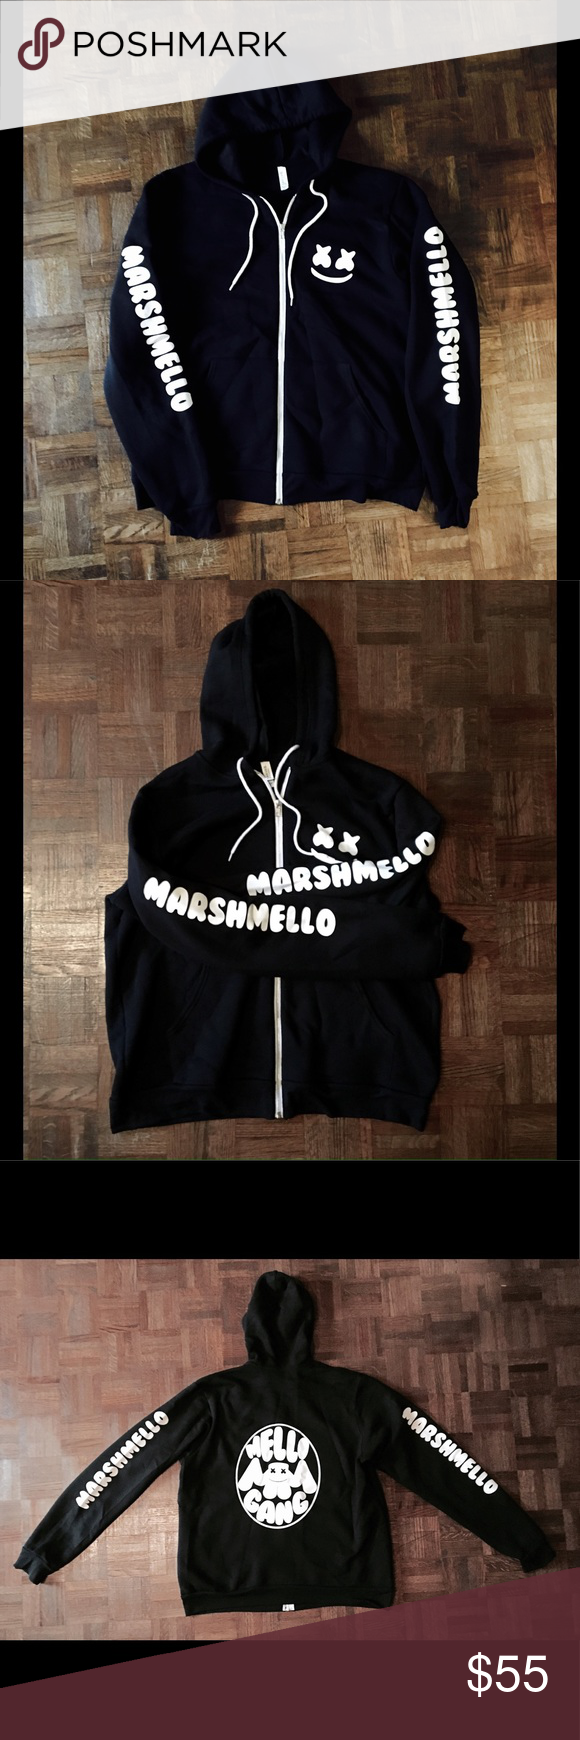 Marshmello Mellogang Black White Hoodie Boutique In 2018 Fashion Tendencies Sweater Logo Pullover Hitam Xl Custom High End Long Sleeve With Full Zipper Down Front A Pull String